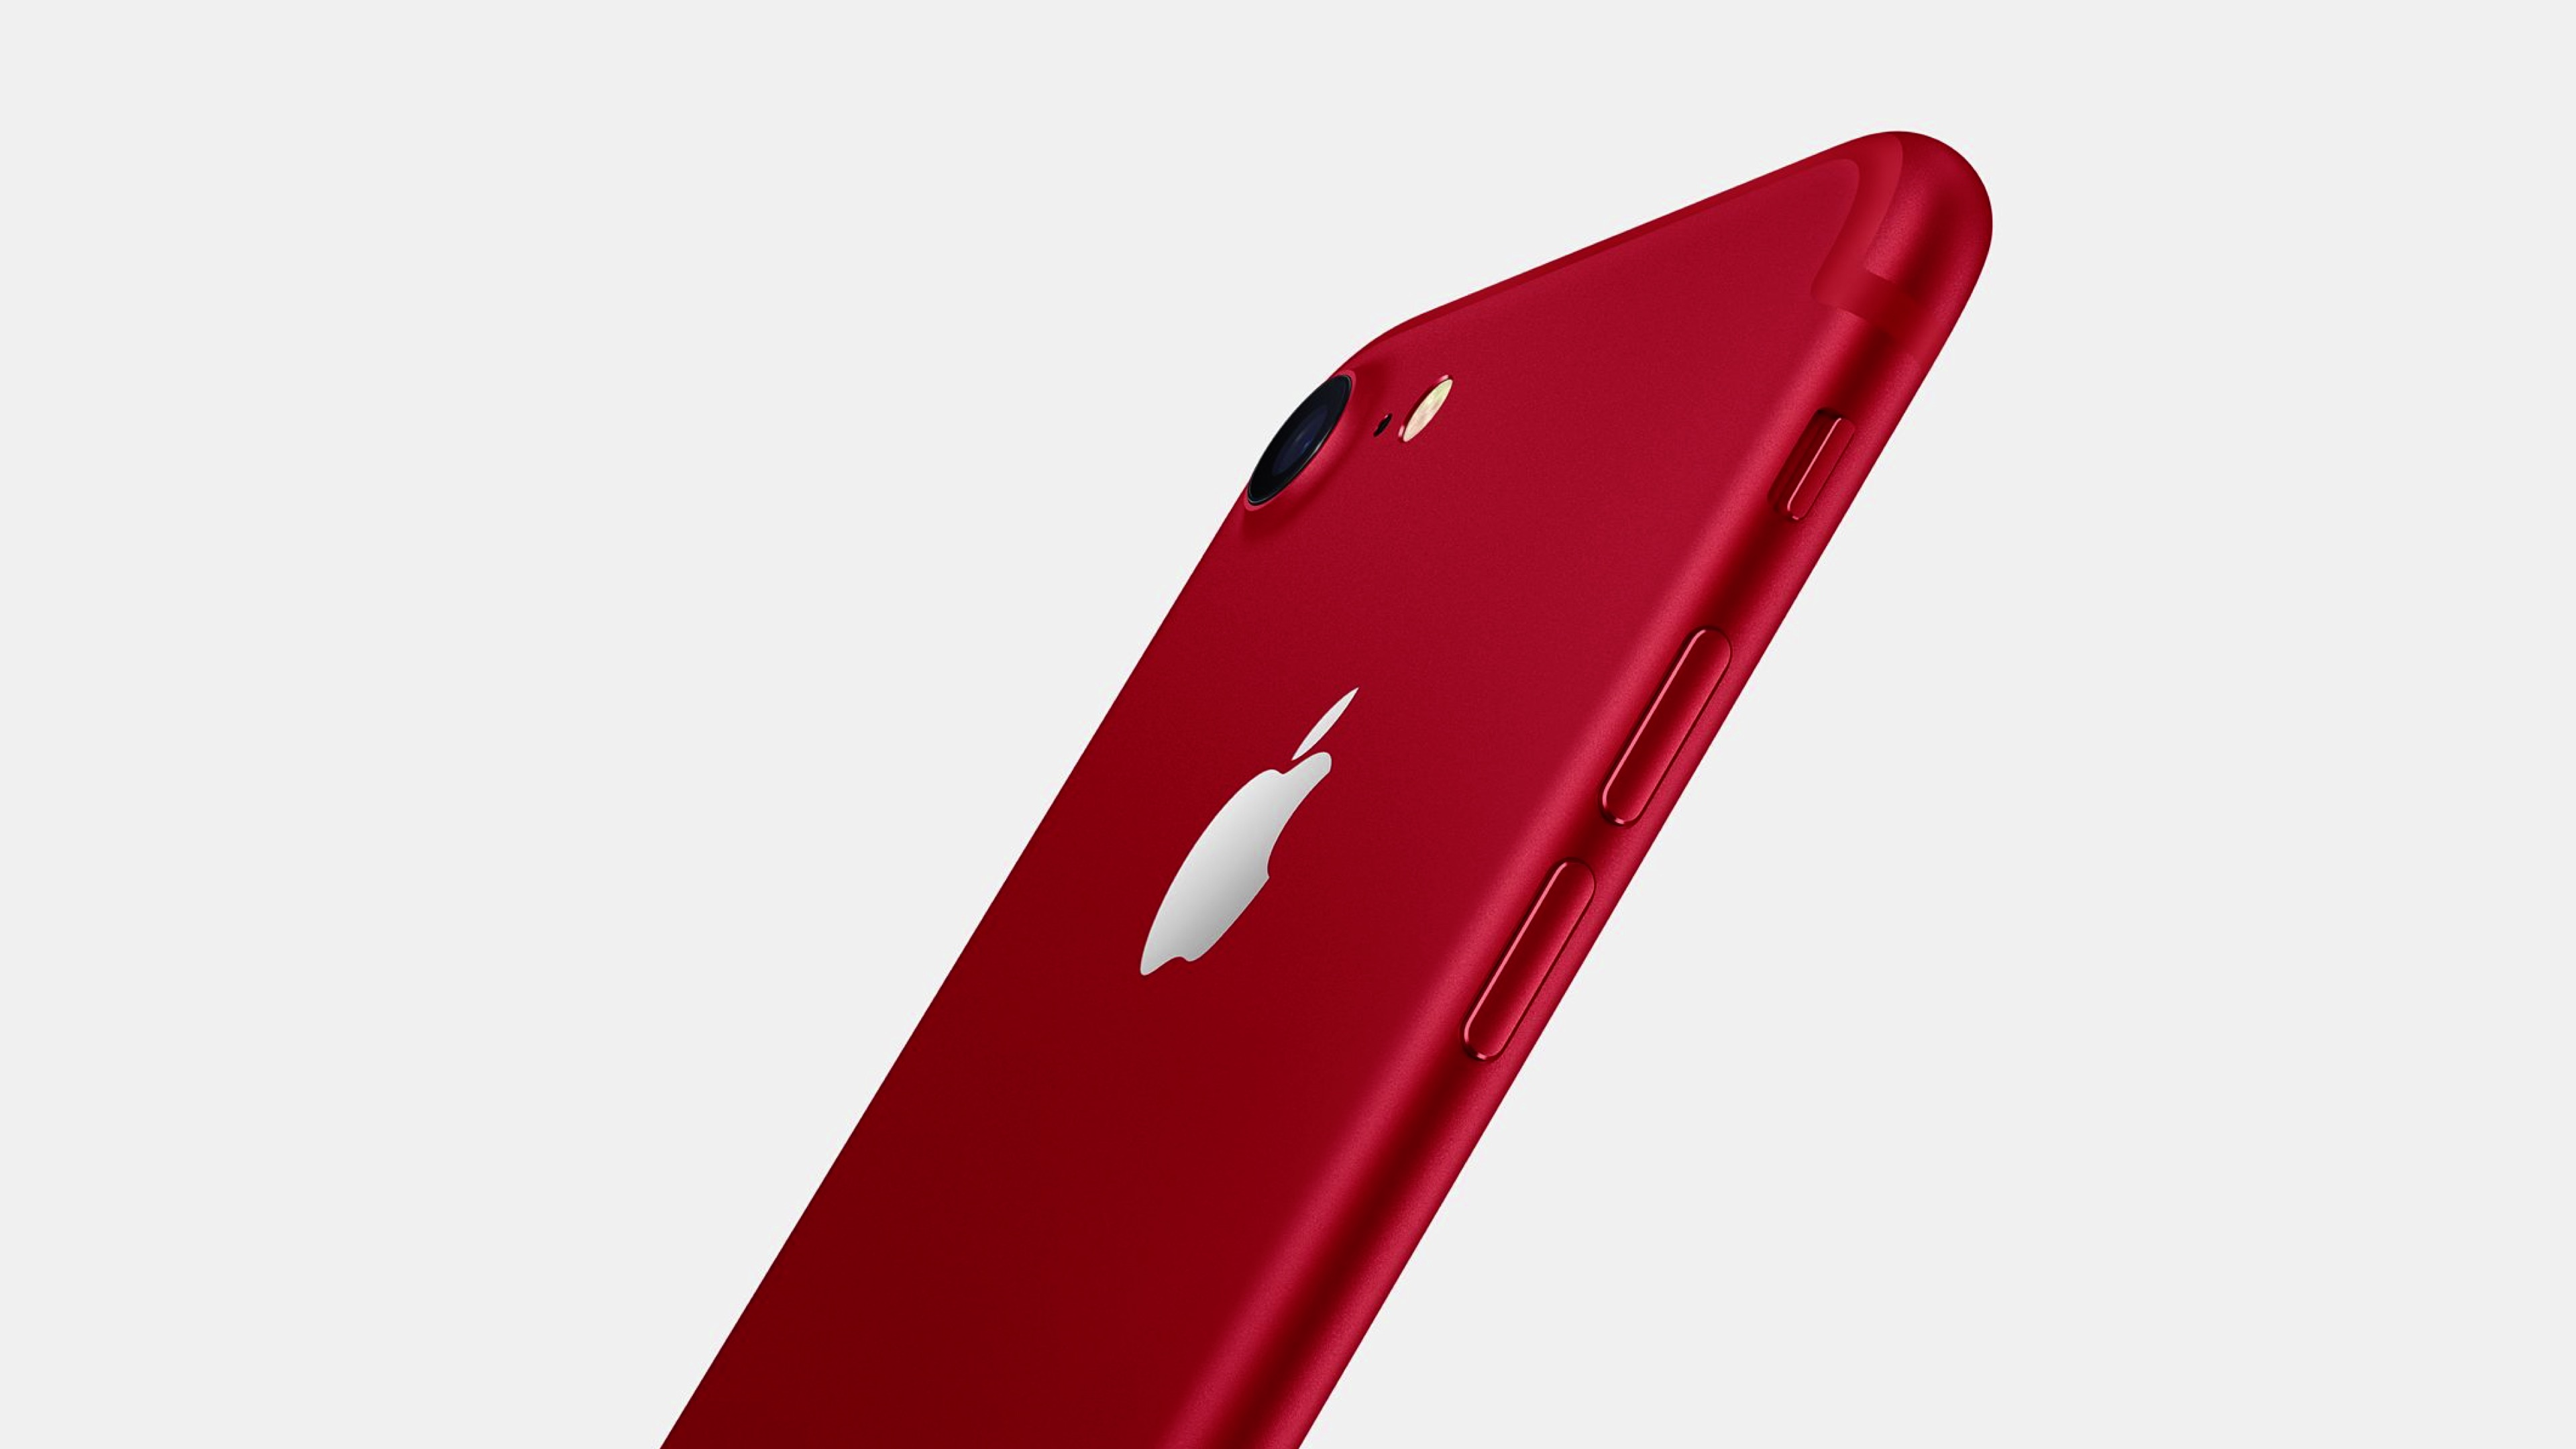 Report: Virgin Mobile employee memo claims (RED) iPhone 8 & 8 Plus launching tomorrow